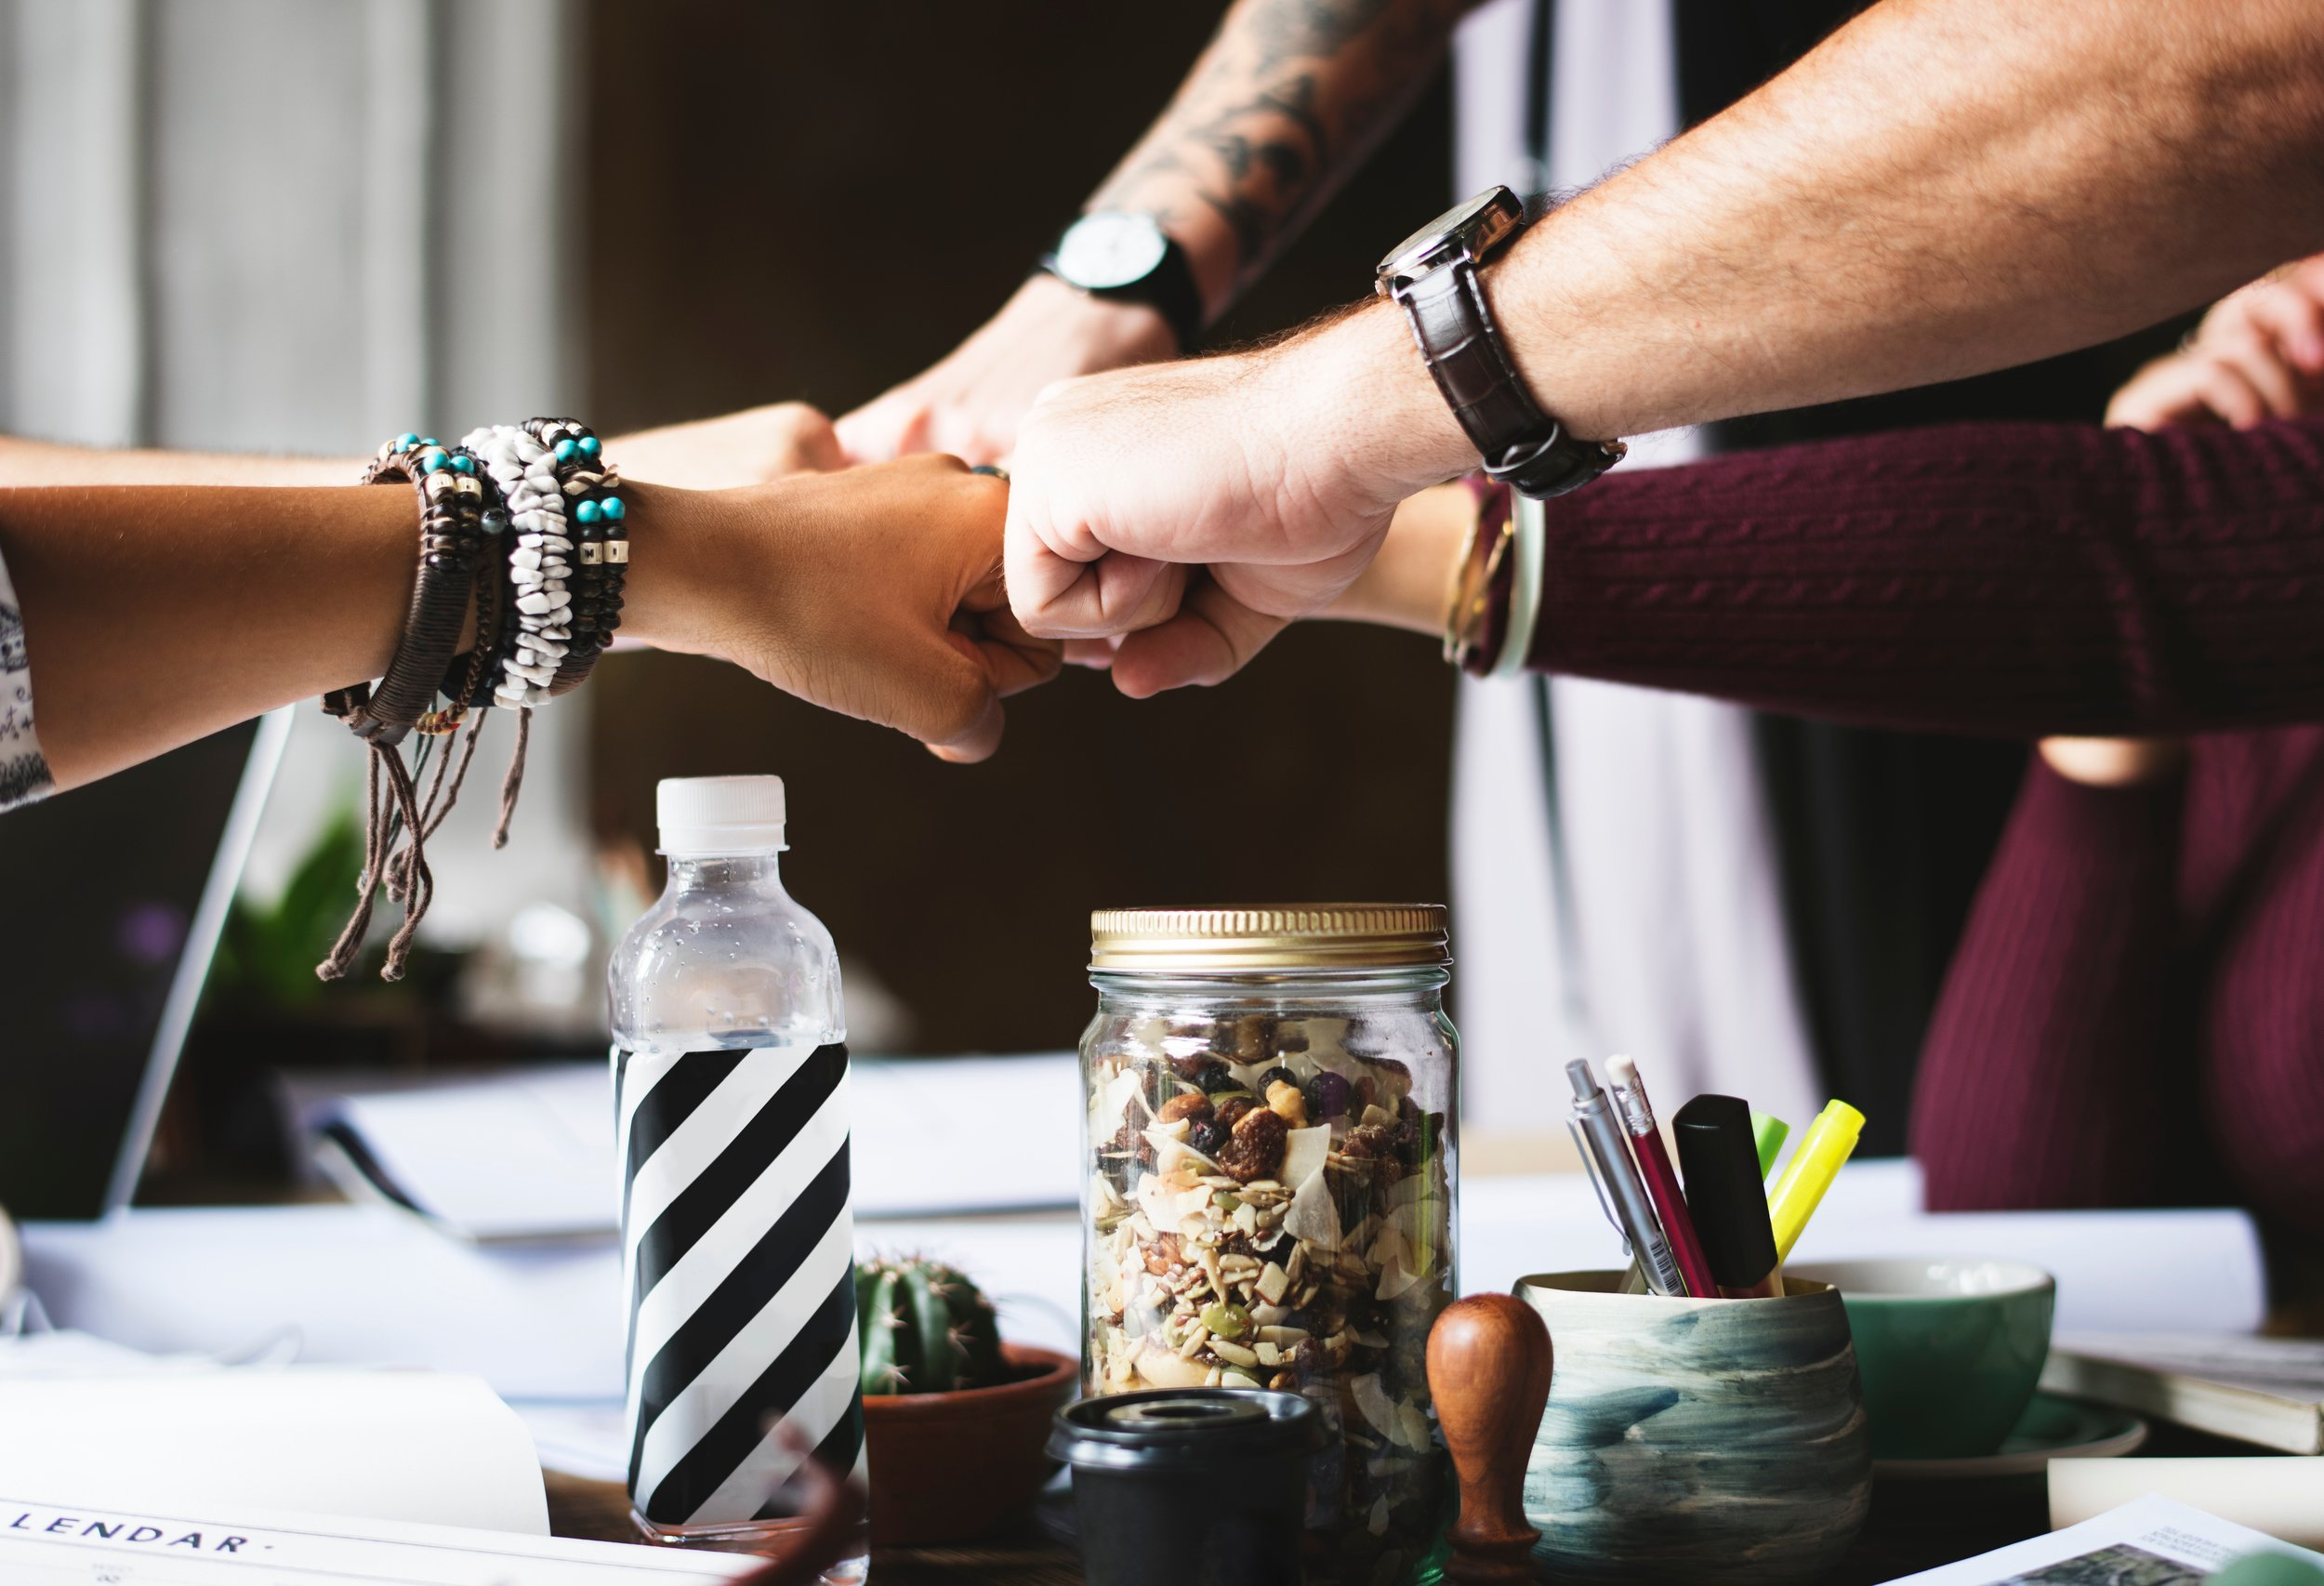 """Cohesive branding, engaging content, and strong teamwork = """"Fired Up"""" digital marketing"""